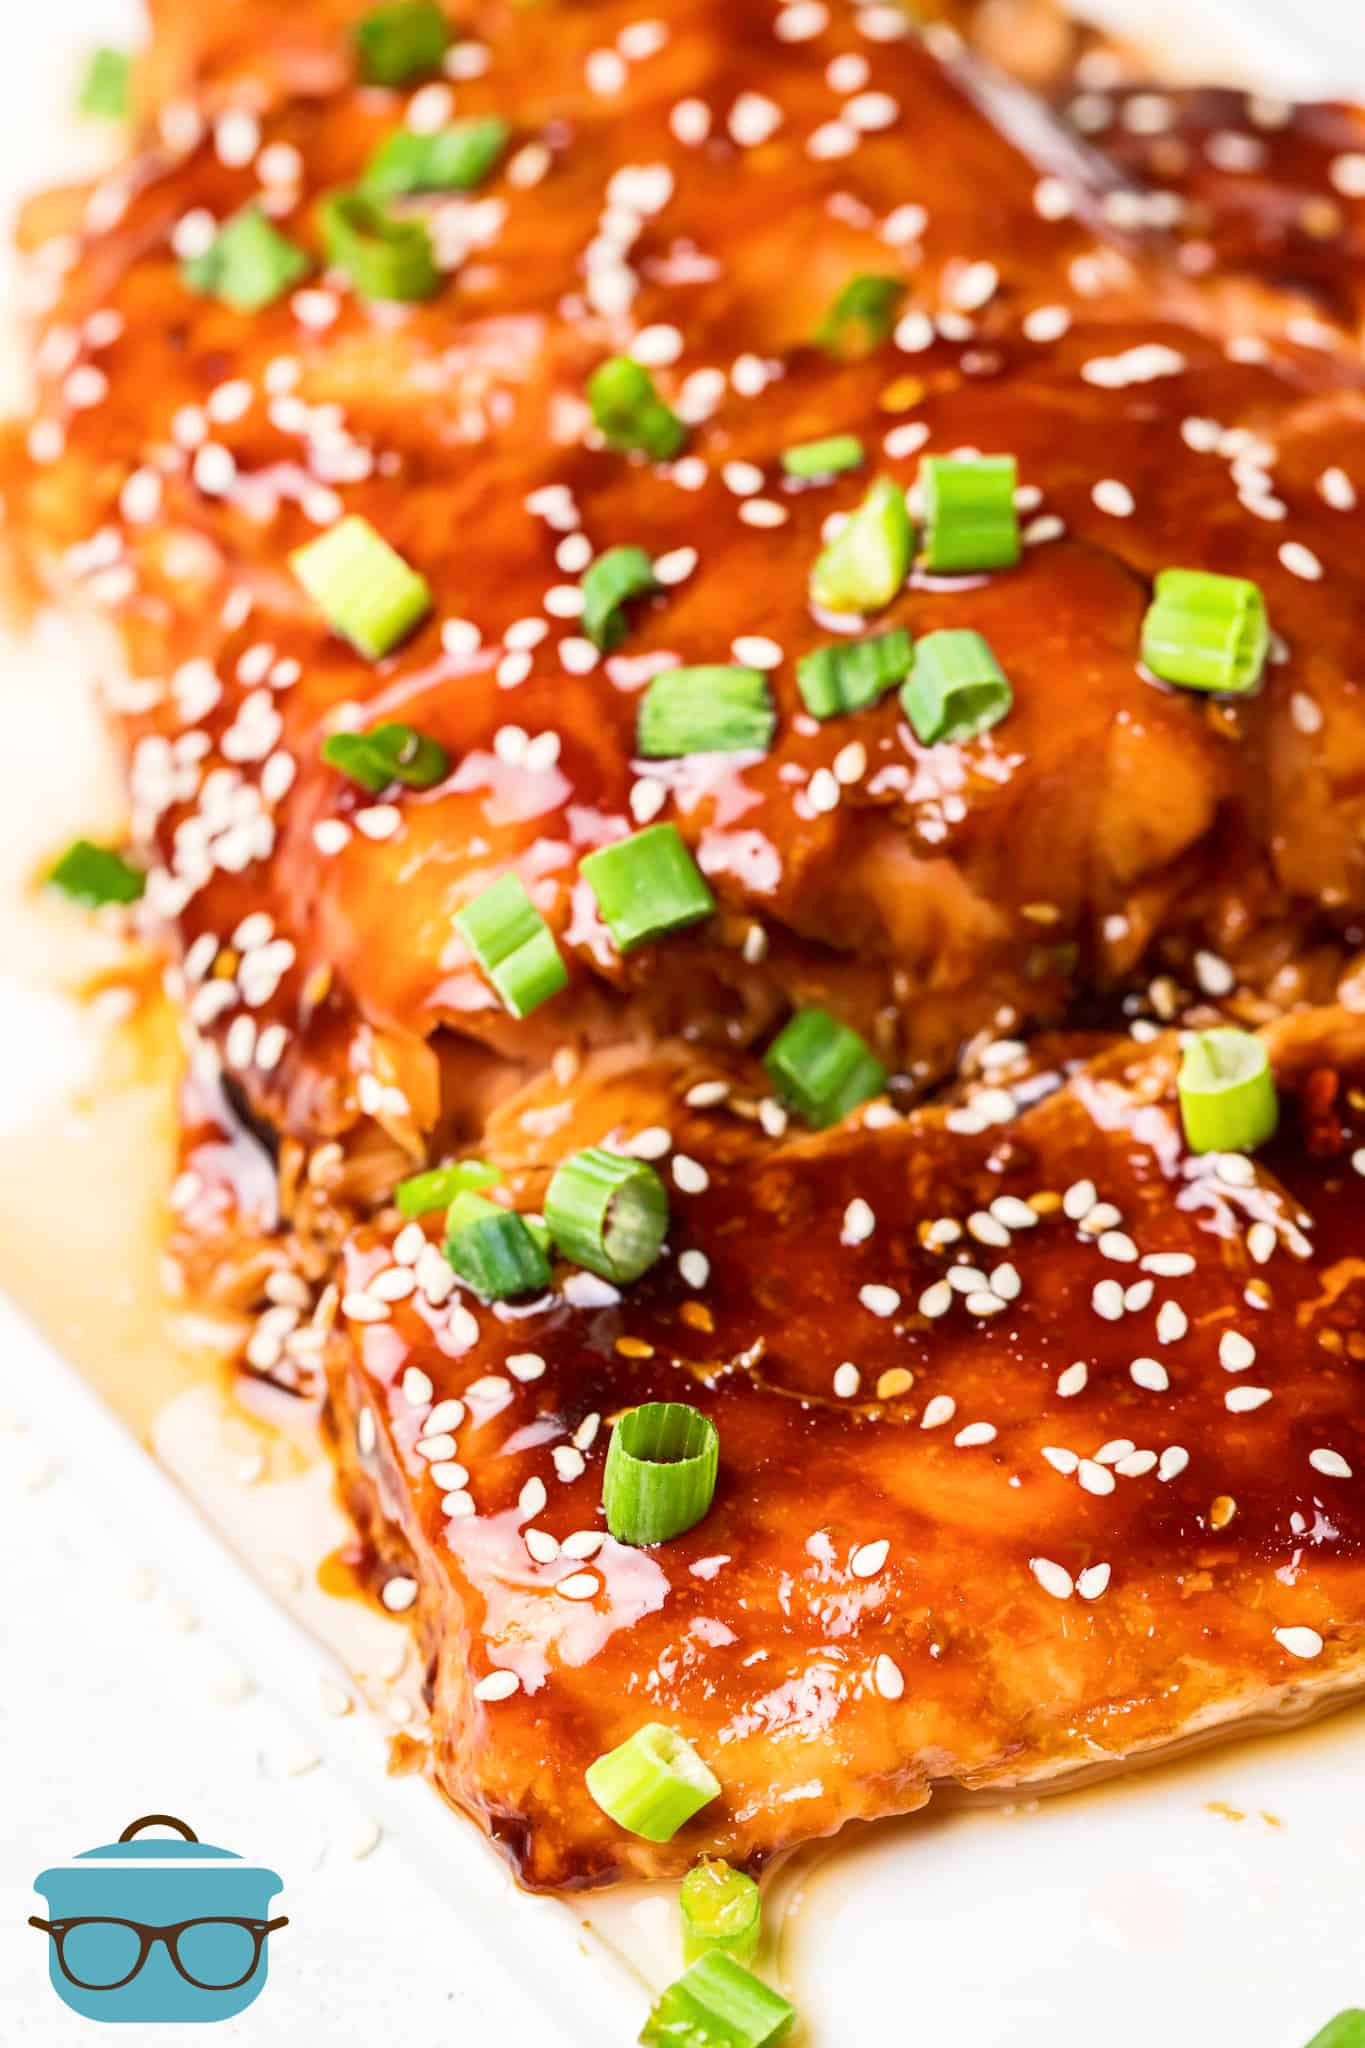 Close up of salmon cut, glazed and topped with sesame seeds and green onions